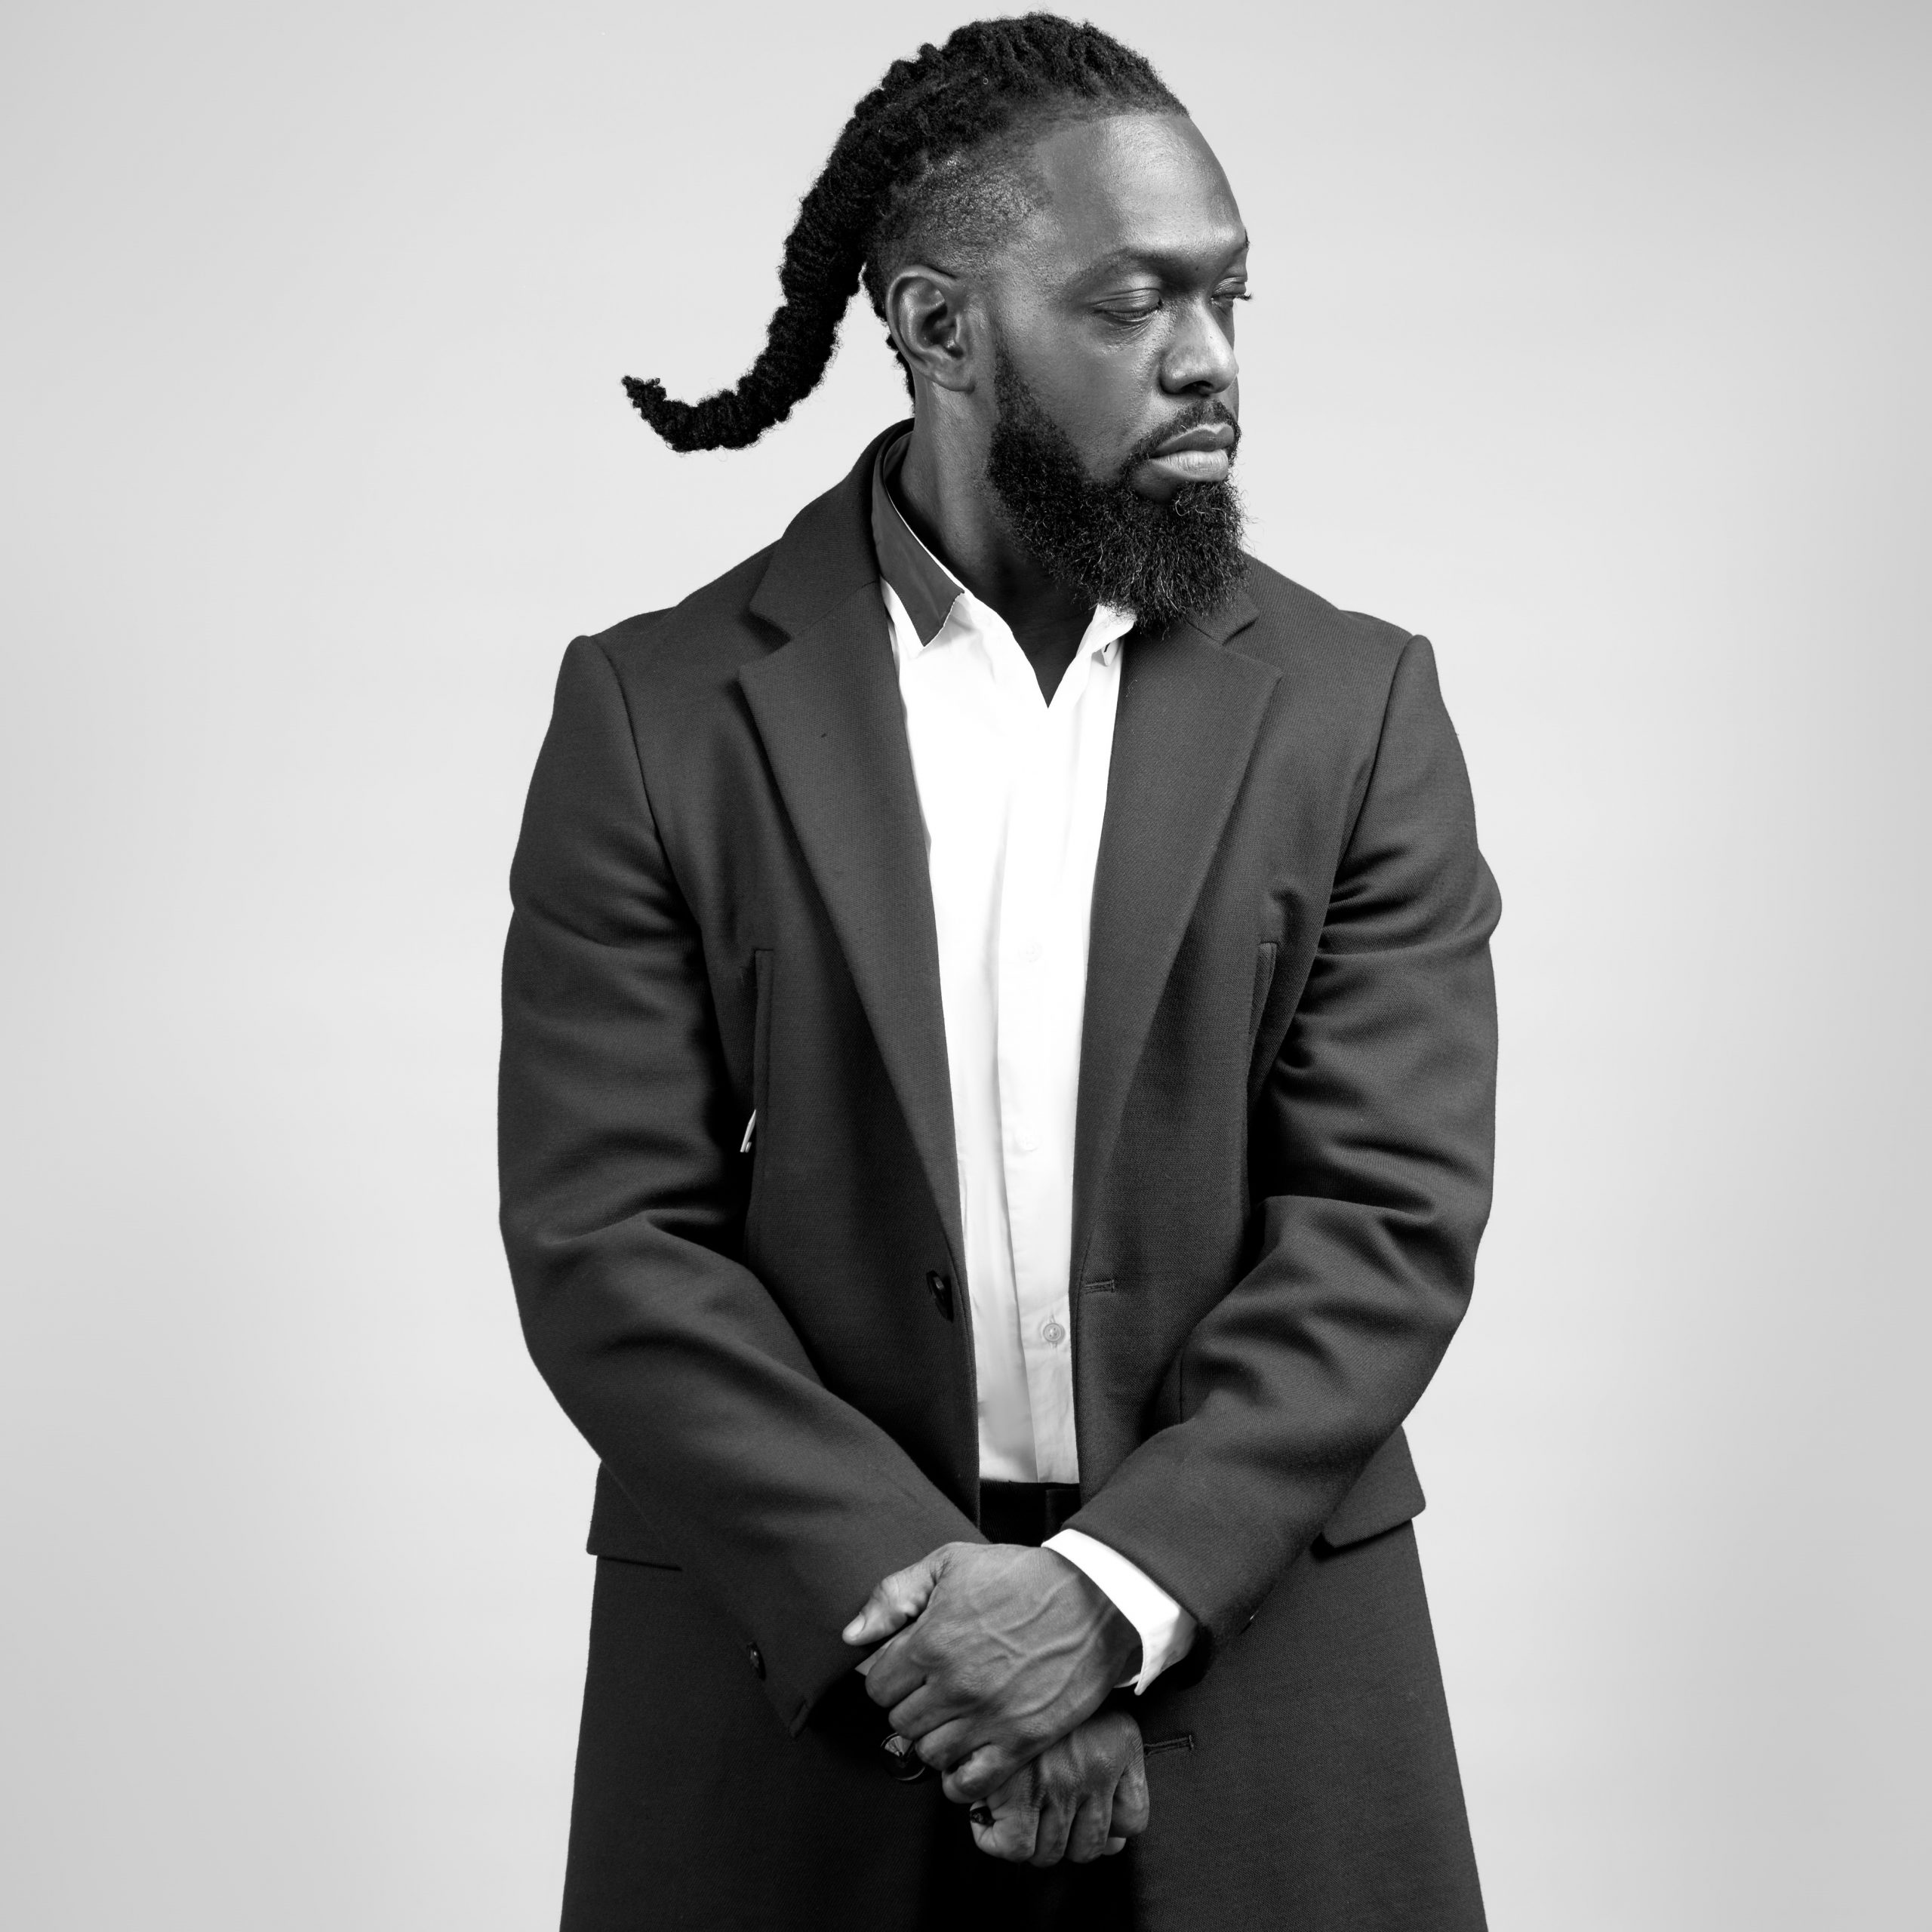 'Gratitude' album – Timaya shares glowing hacks for a wholesome life.